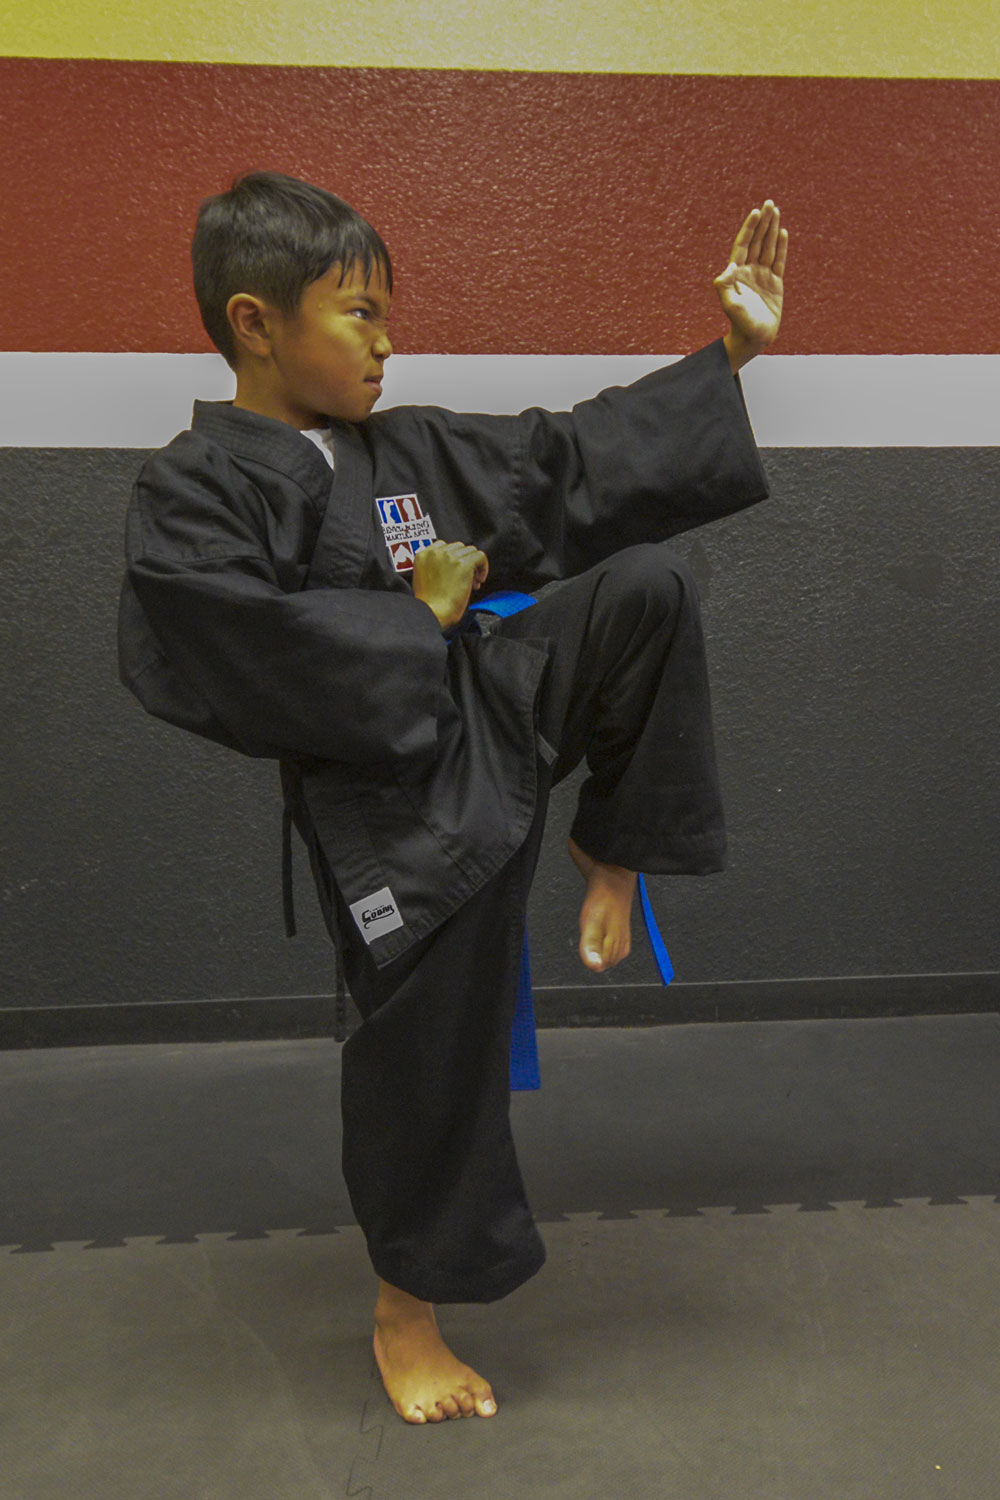 Kenpo Karate - Benicia Boxing and Martial Arts